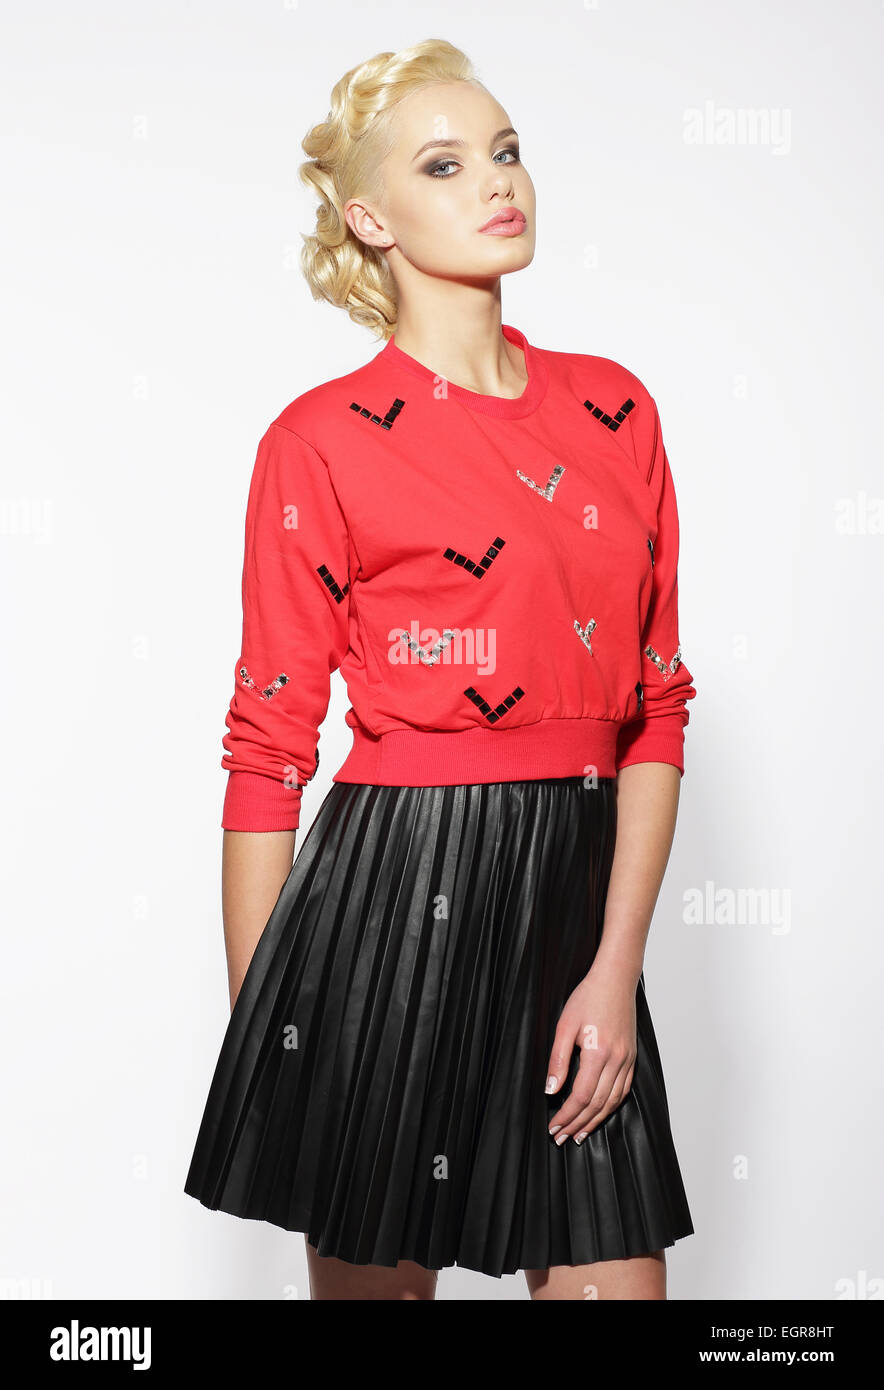 Trendy Blond in Red Blouse and Black Skirt - Stock Image